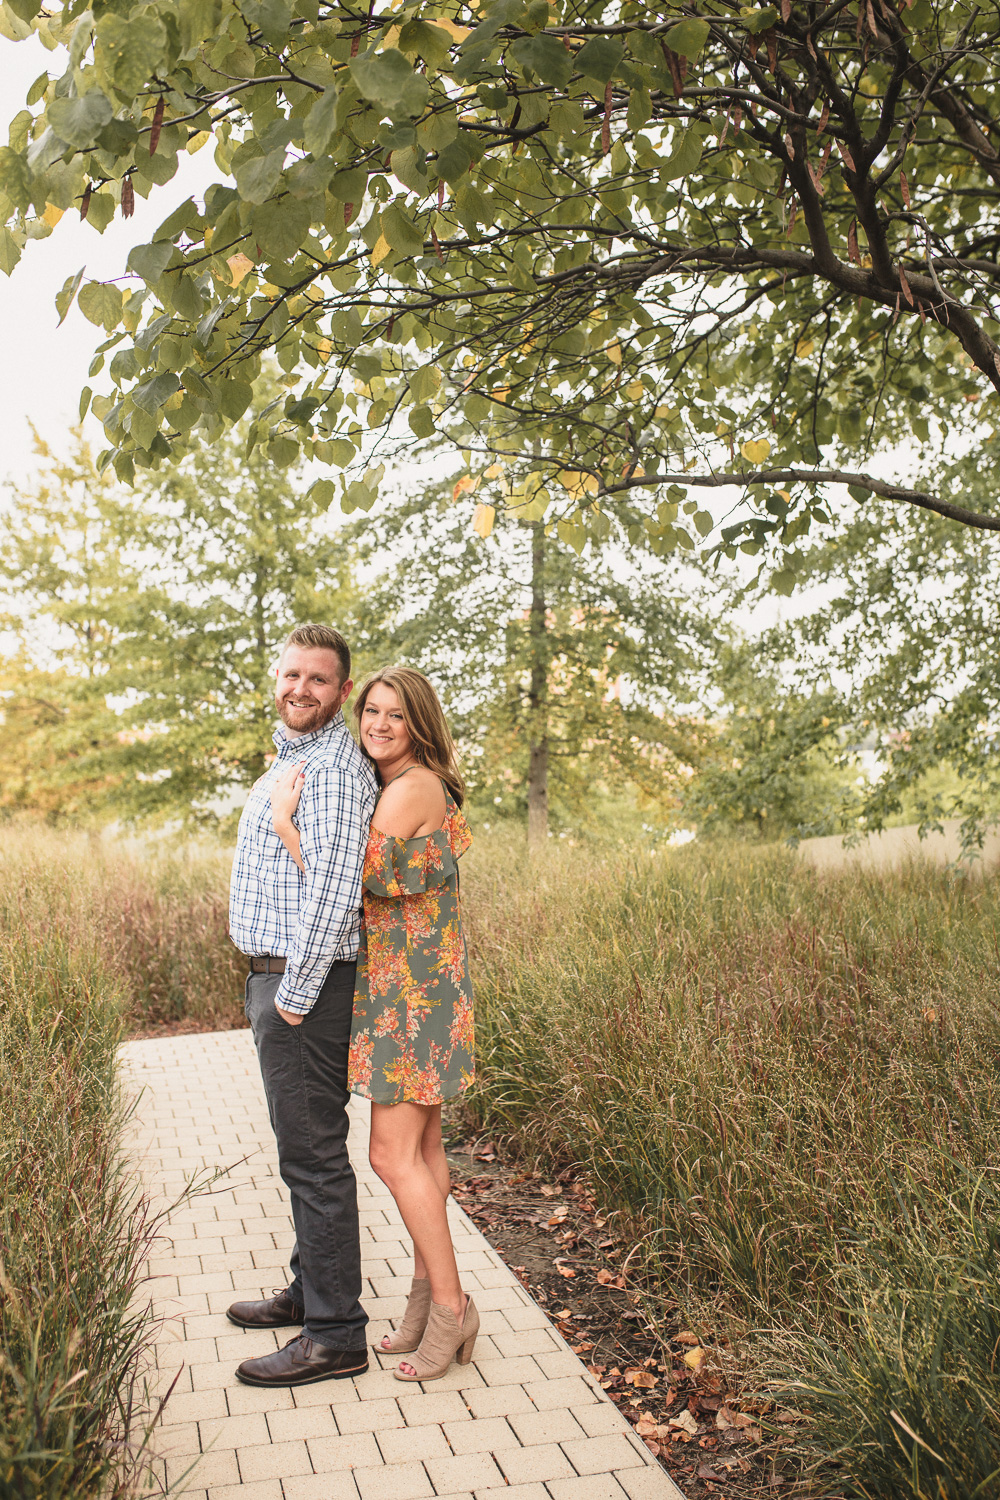 Urban_KC_Engagement_Anthony_Rachel_Kelsey_Diane_Photography_1-9000.jpg